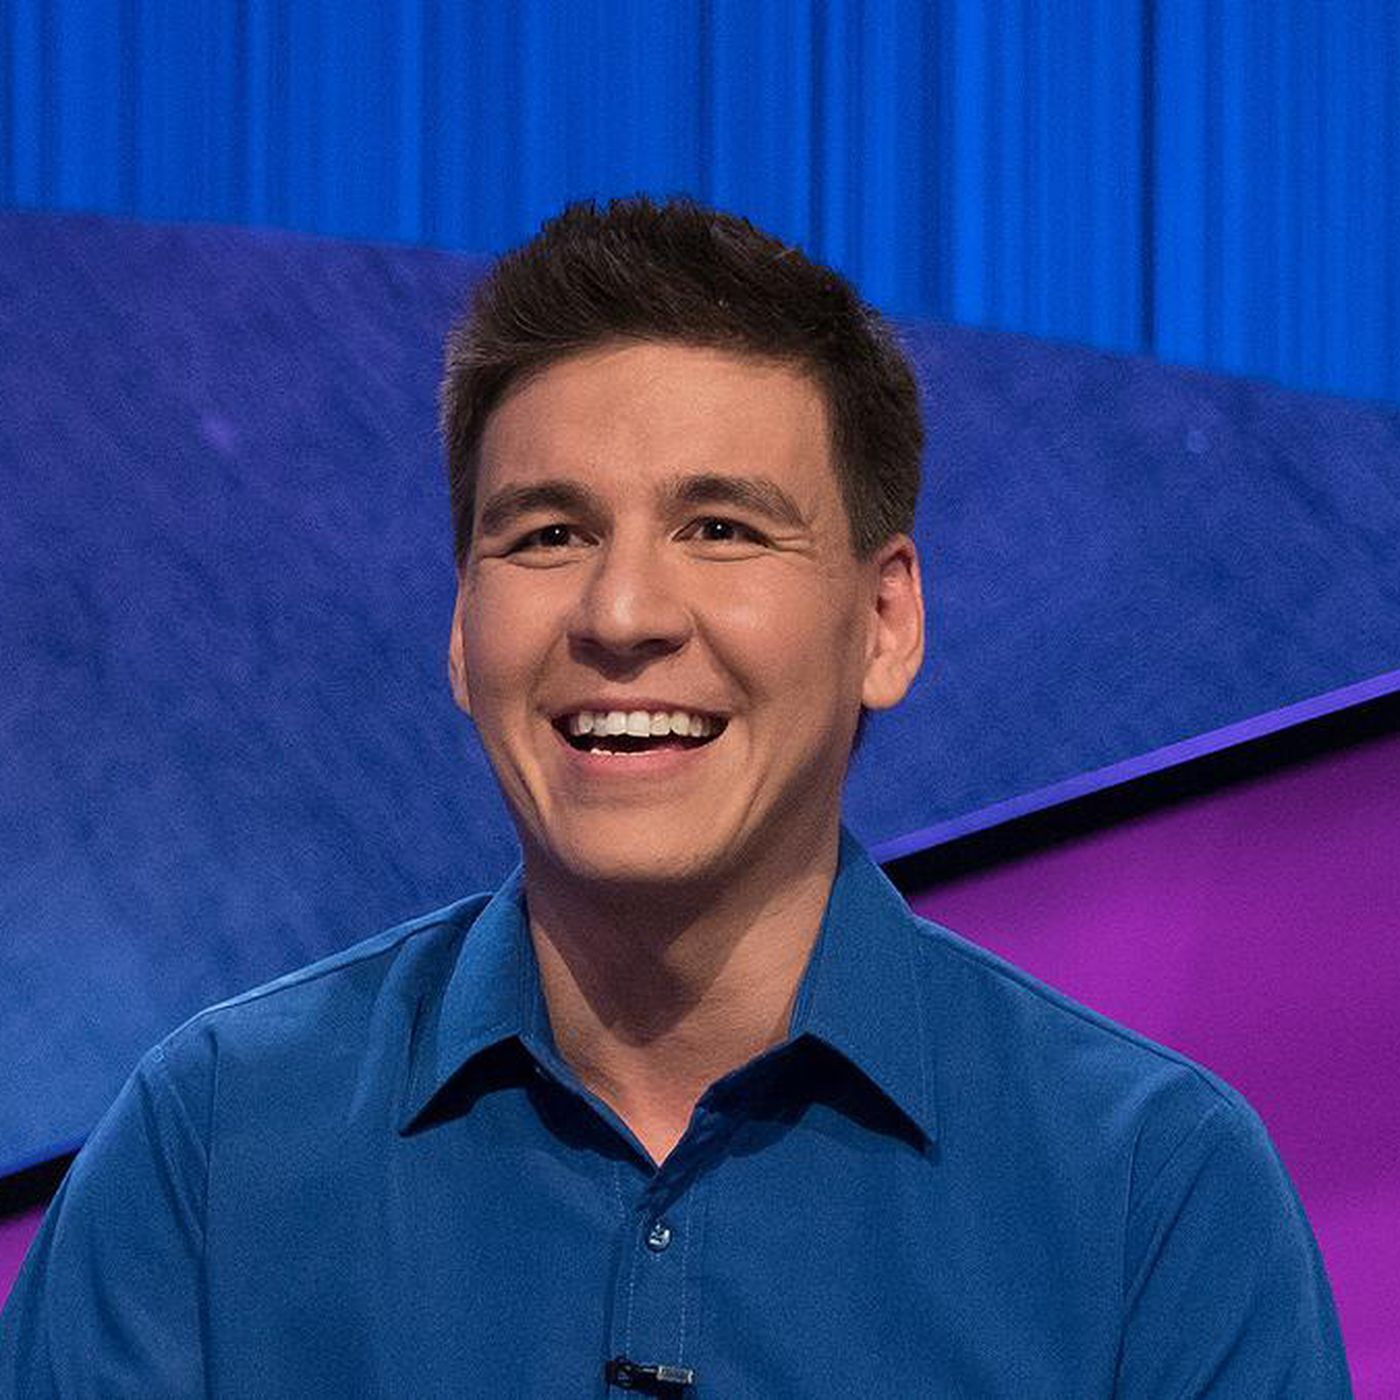 Jeopardy champion James Holzhauer's winning streak, explained - Vox